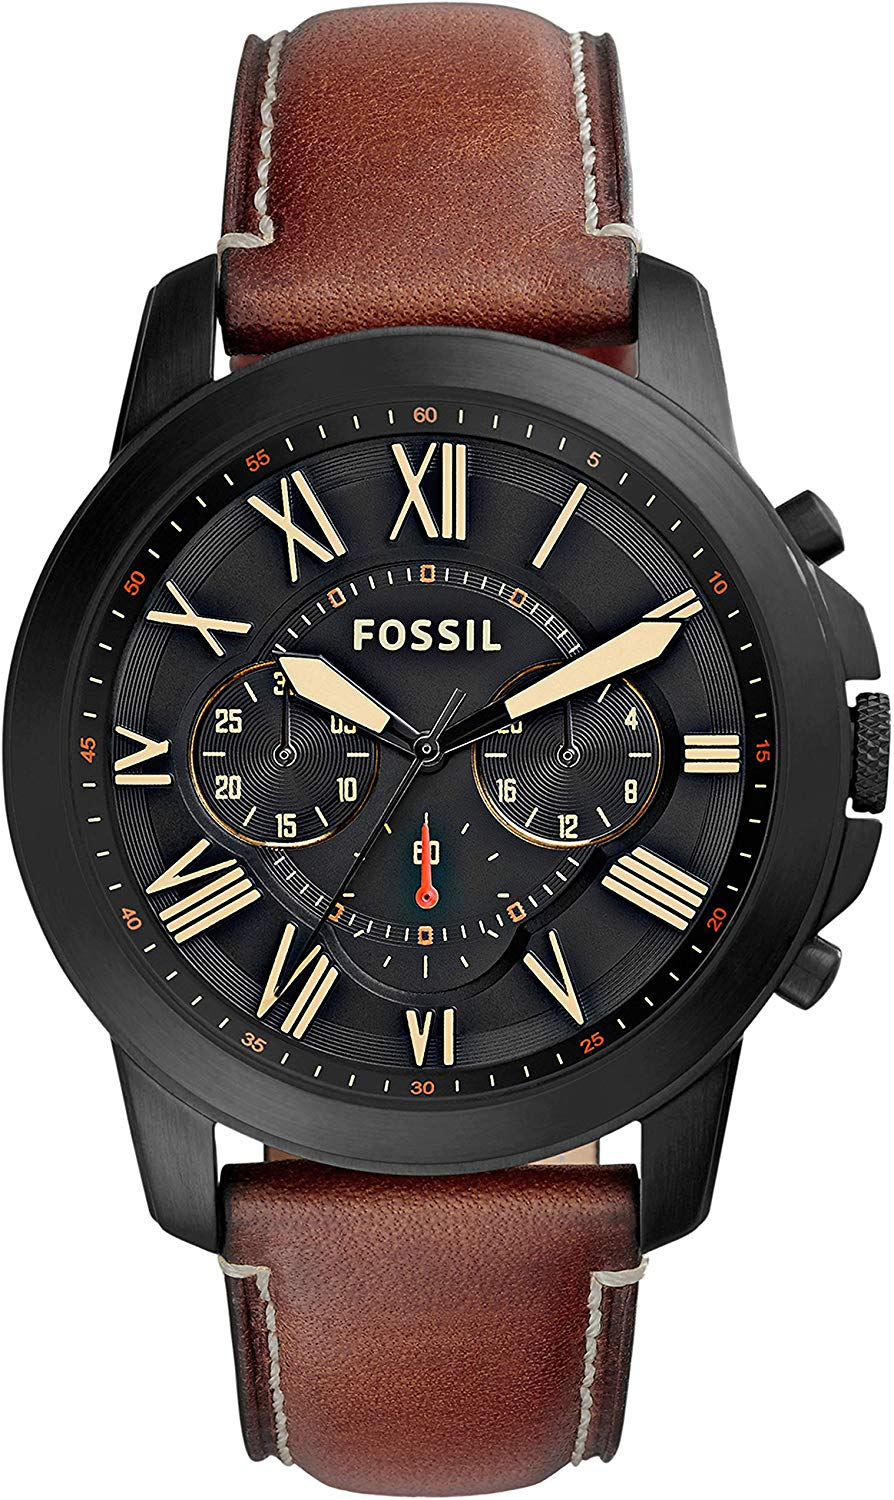 Fossil FS5241 Chronograph Watch